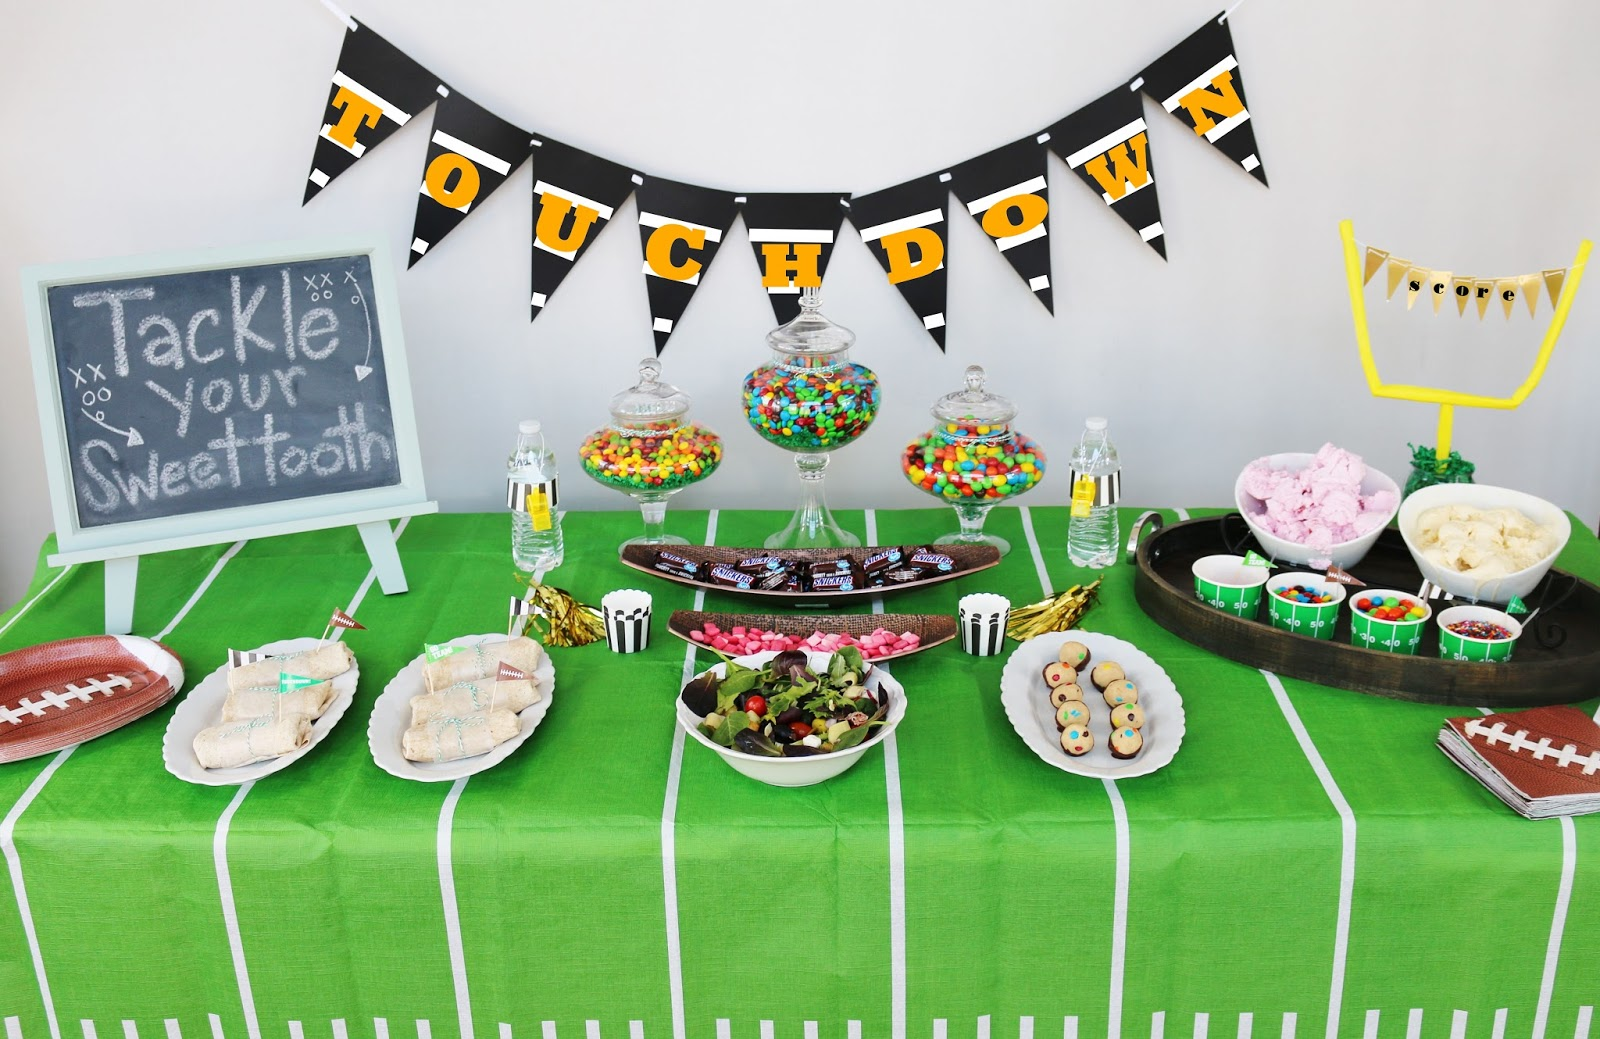 Super Bowl Party Ideas my simple modest chic: truffles & super bowl party ideas